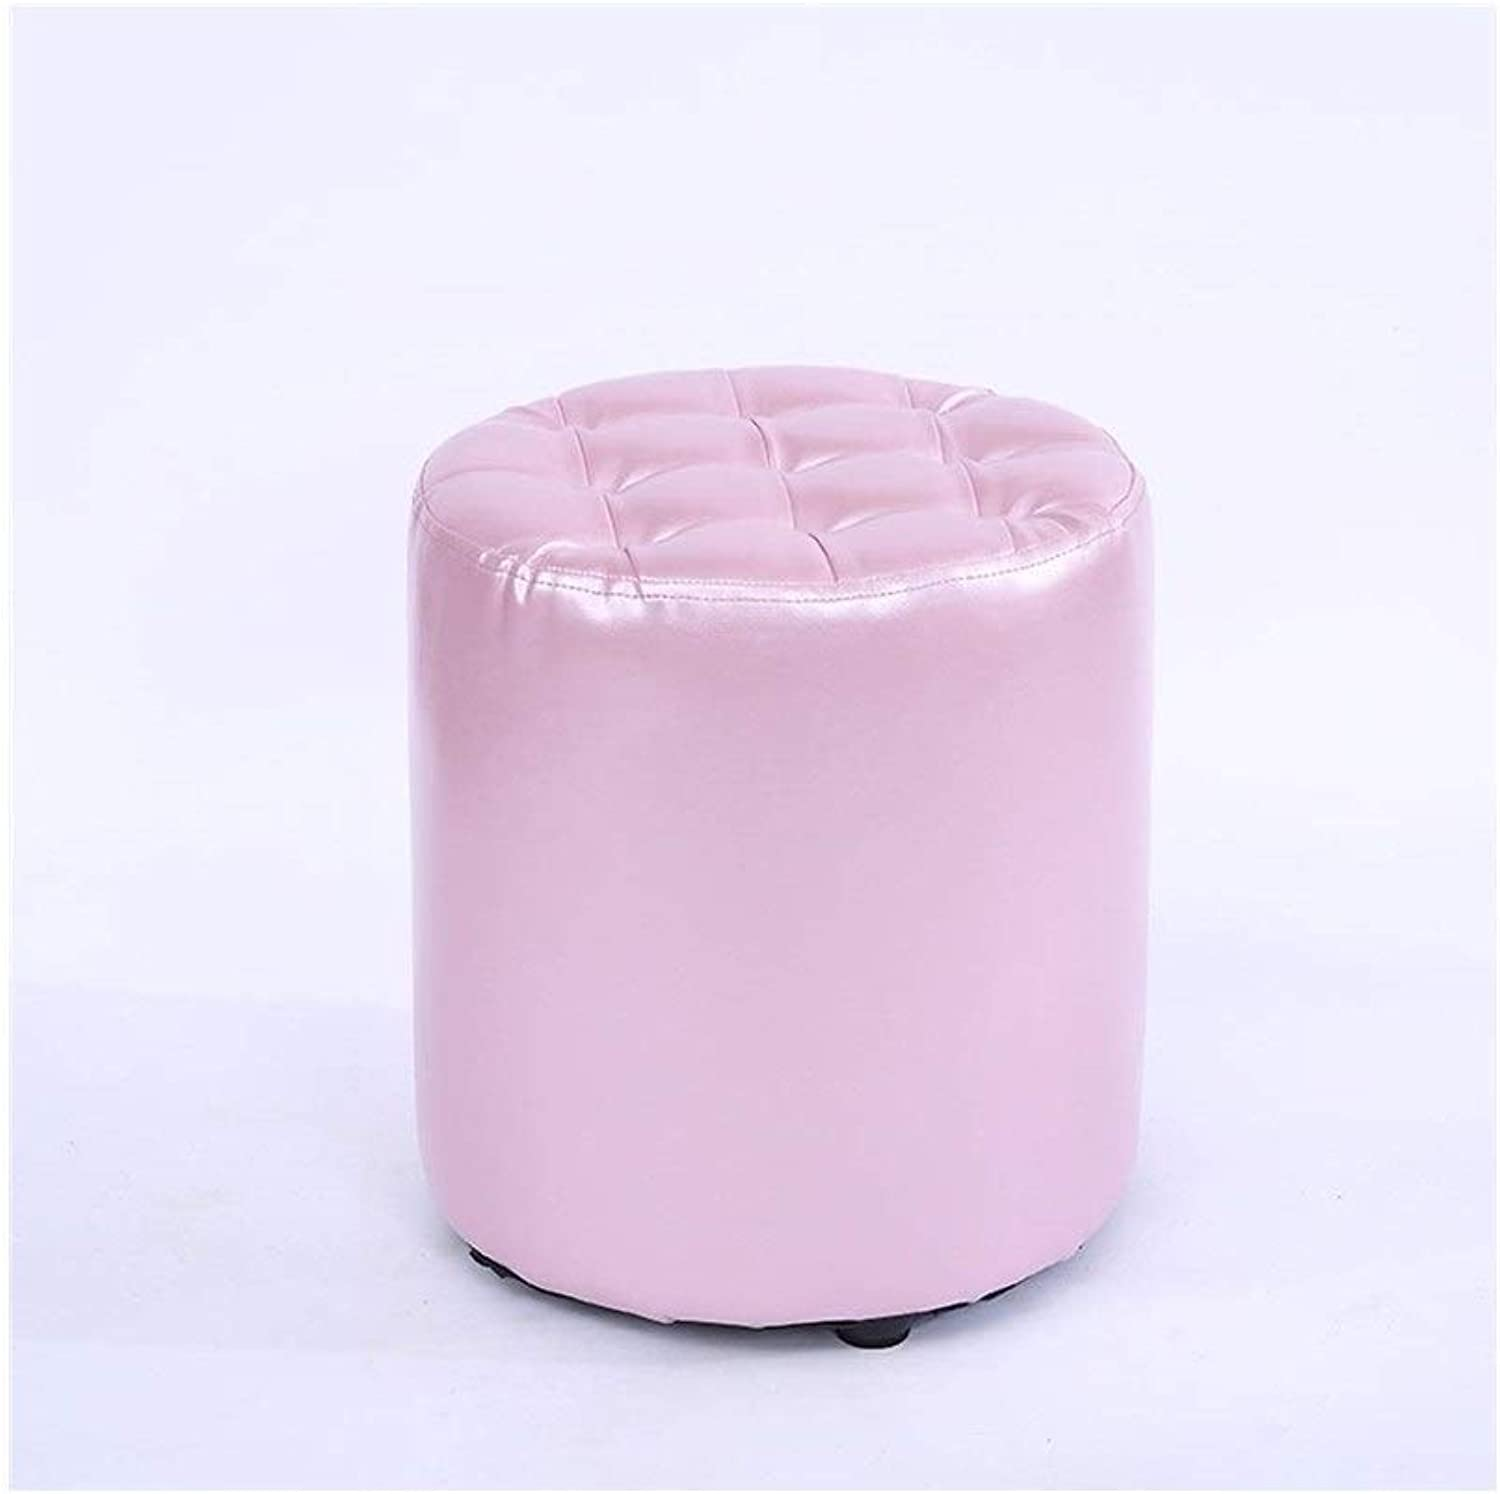 Footstool Home Sofa Stool Multi Function Stool Makeup Stool shoes Bench LEBAO (color   Pink)